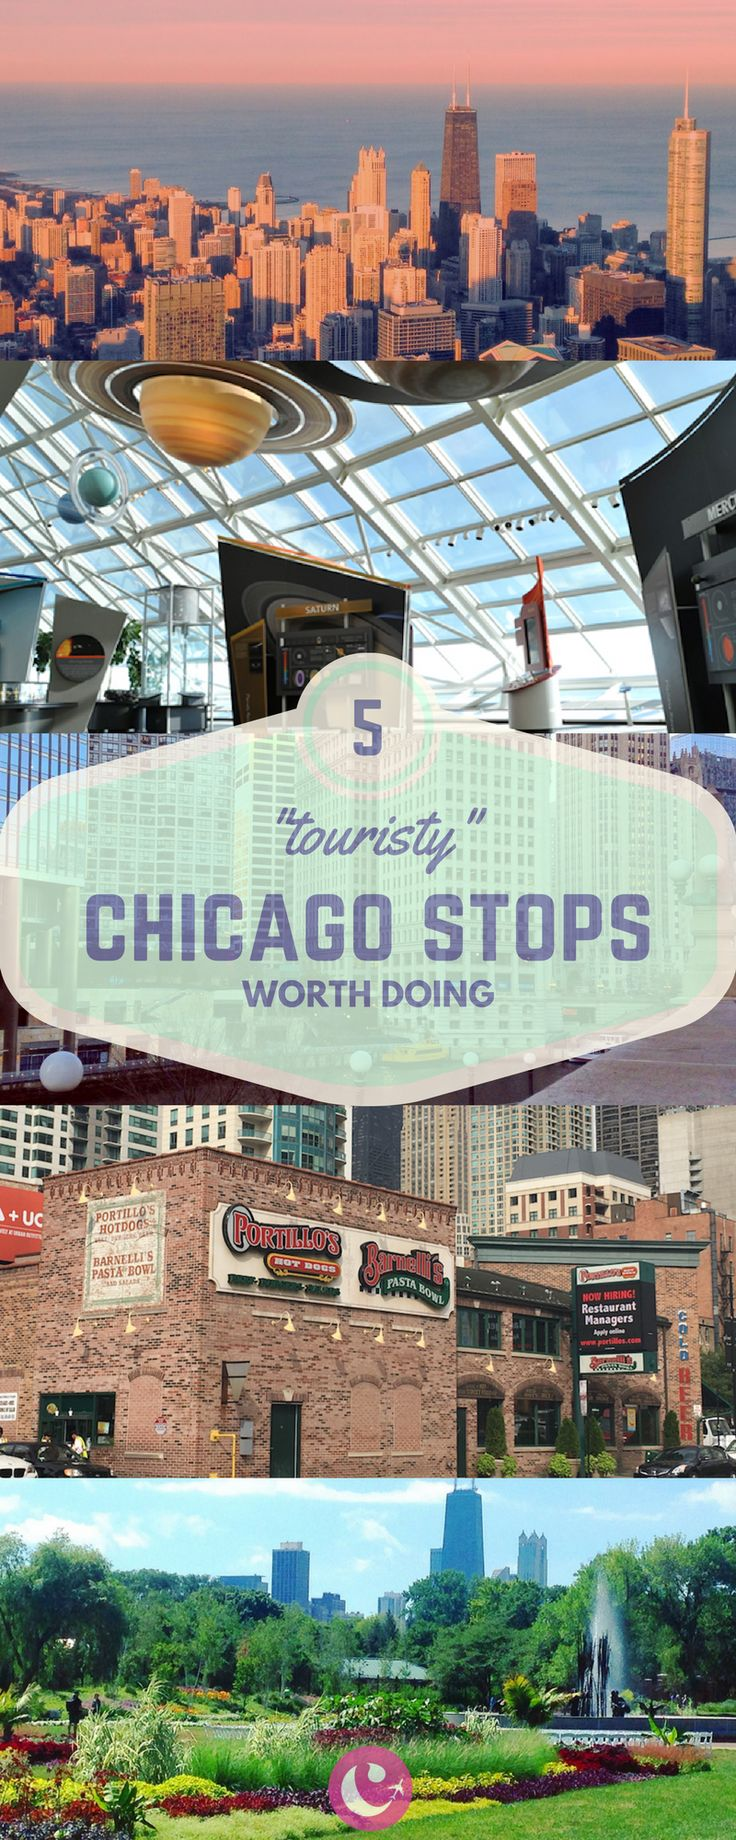 Chicago Tourist Attractions Actually Worth Doing